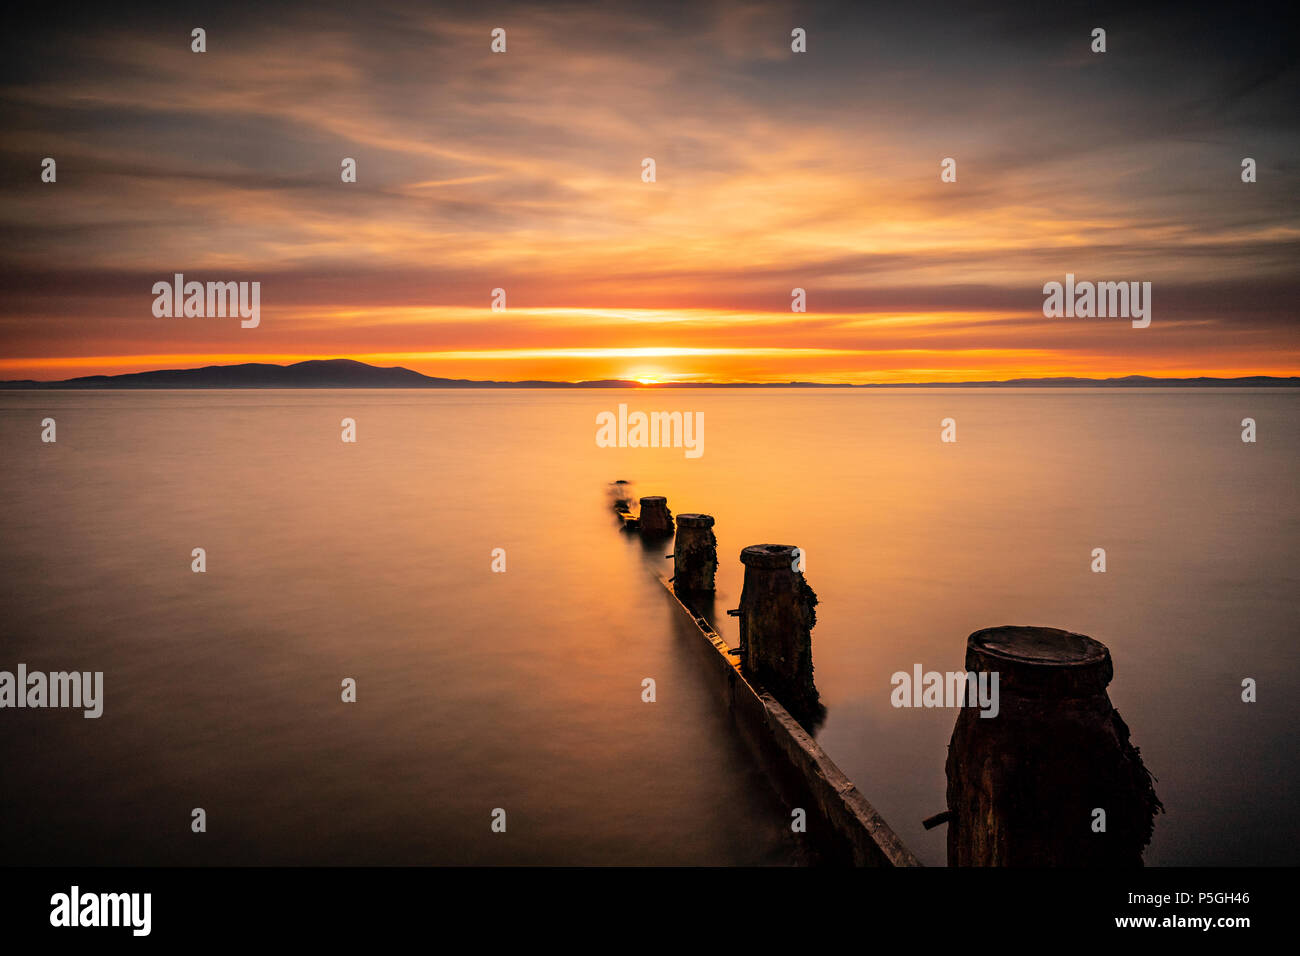 Sunset over Scotland from Silloth, Cumbria. - Stock Image